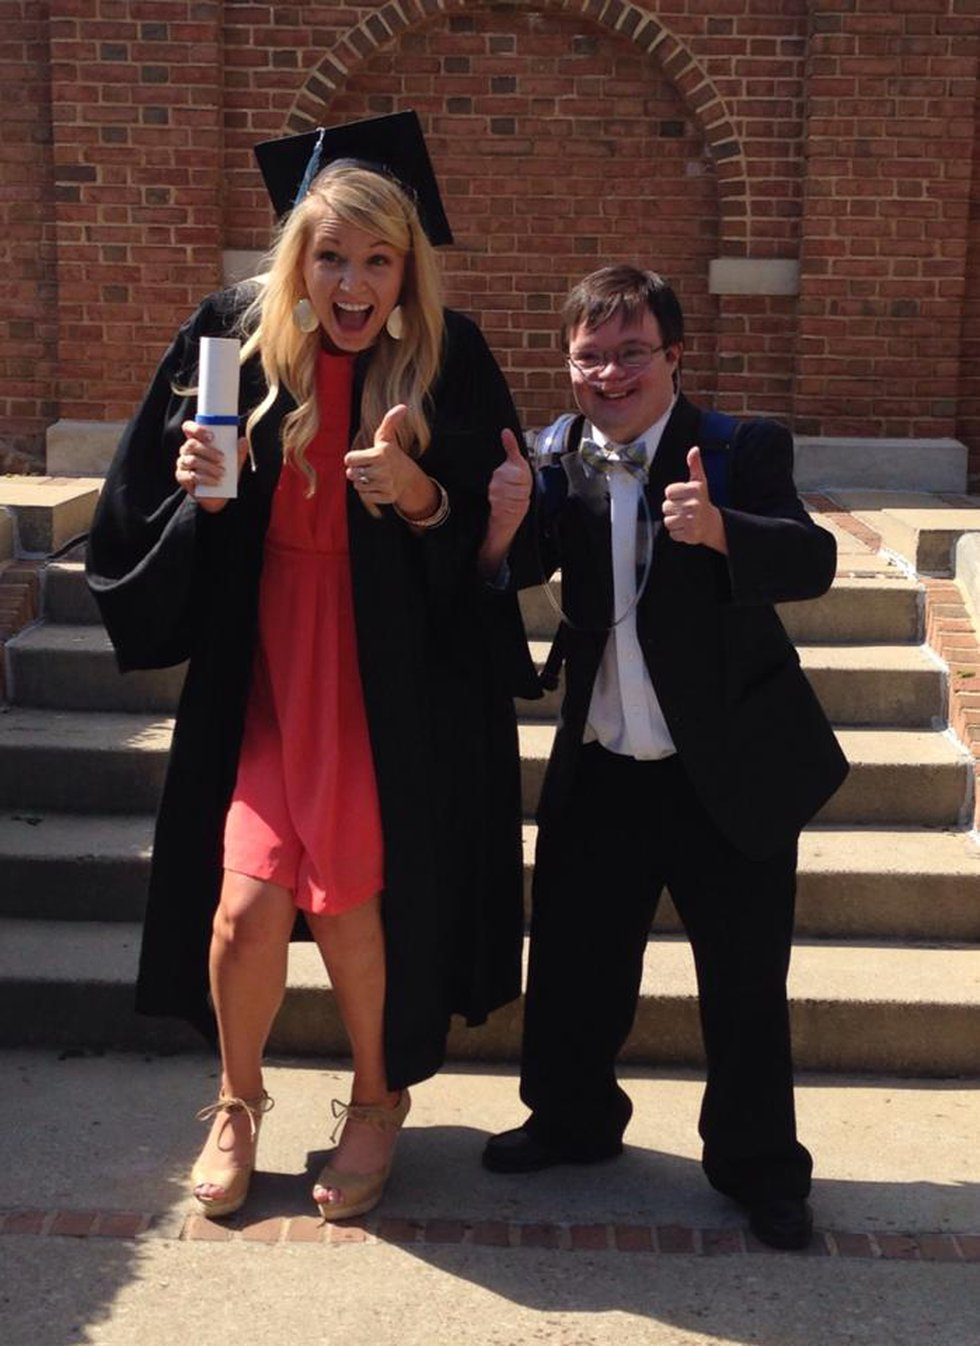 Lindy and Jordan (her brother) at her Samford graduation in 2014.